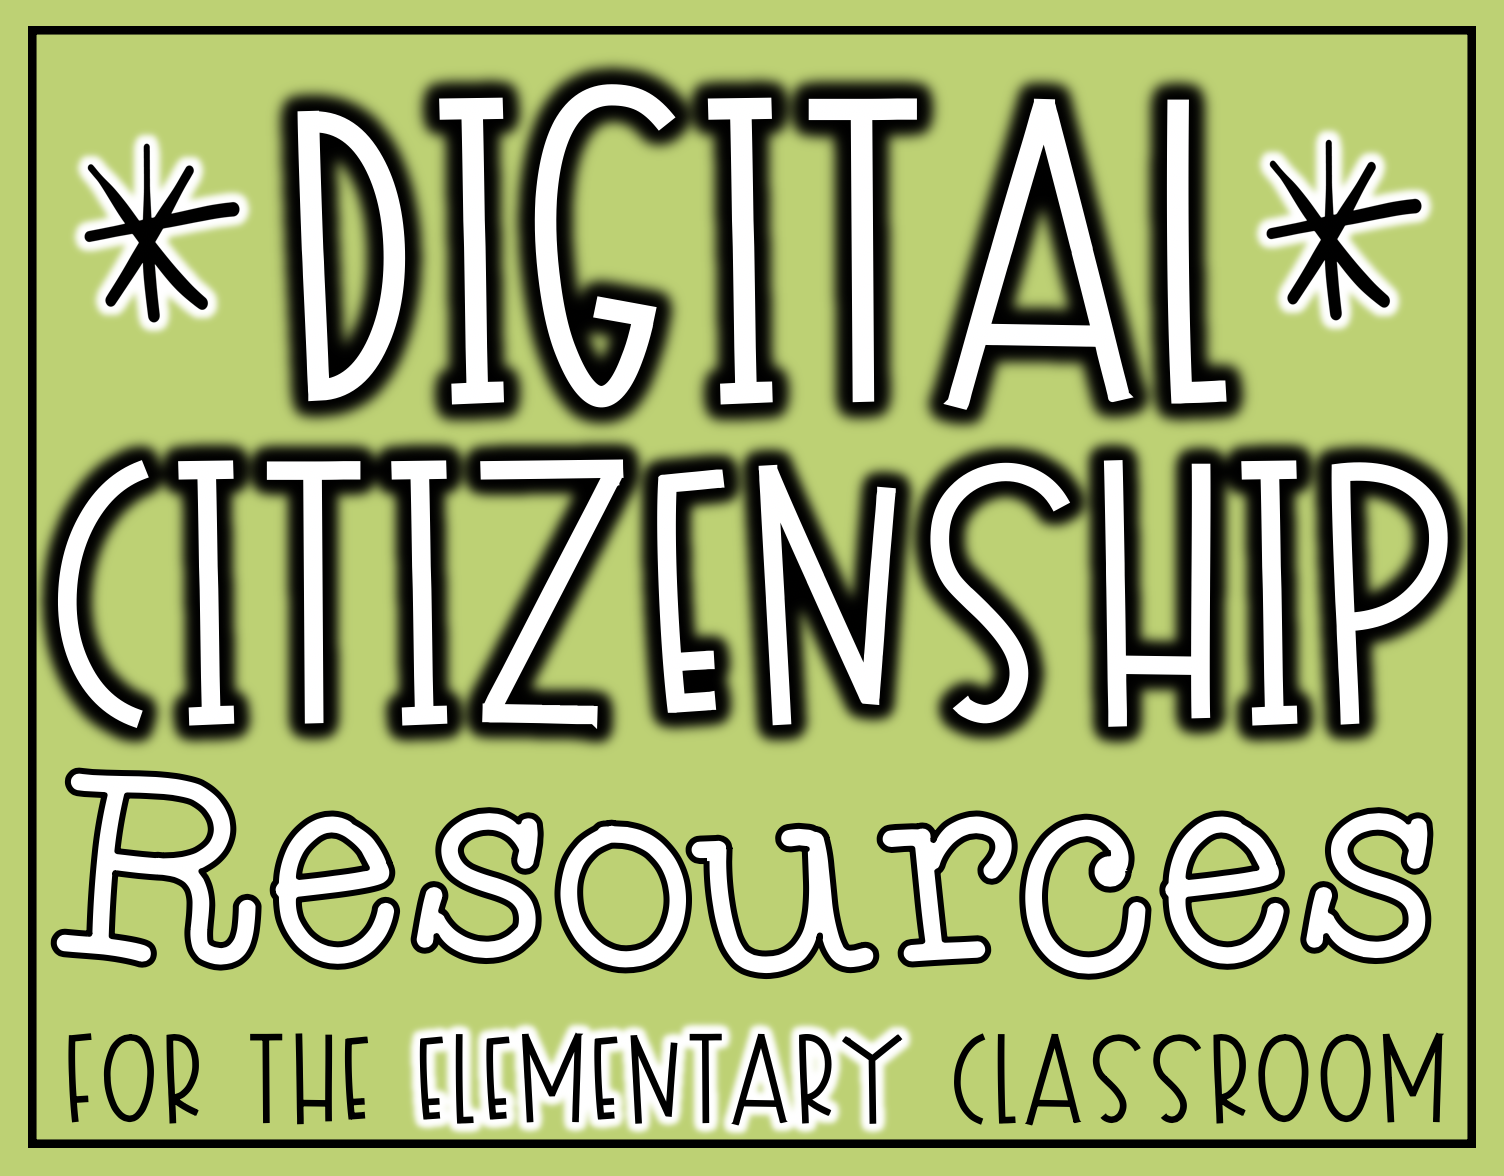 medium resolution of Digital Citizenship Resources for the Elementary Classroom   The Techie  Teacher®